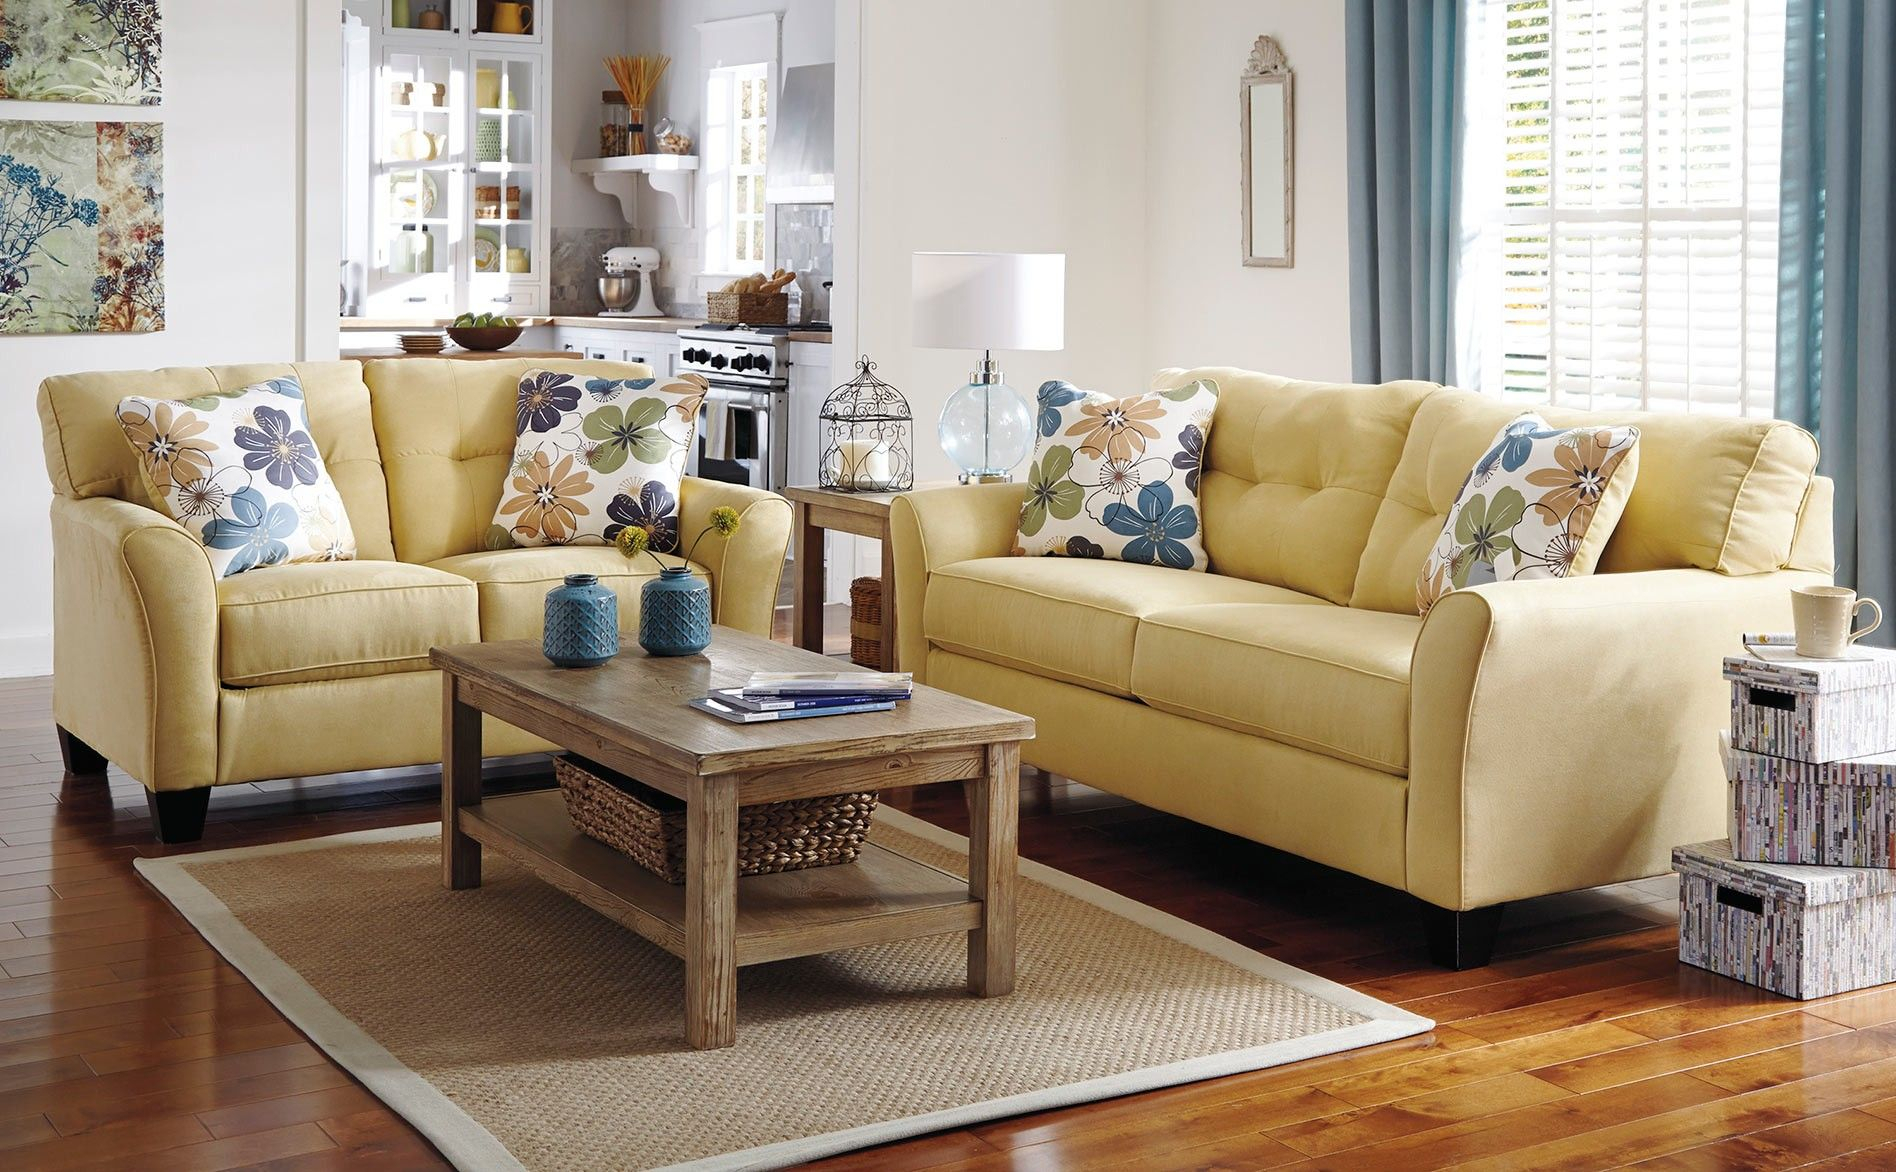 How Sweet Is This Yellow Sofa Set? This Can Surely Throughout Yellow Sofa Chairs (View 2 of 15)